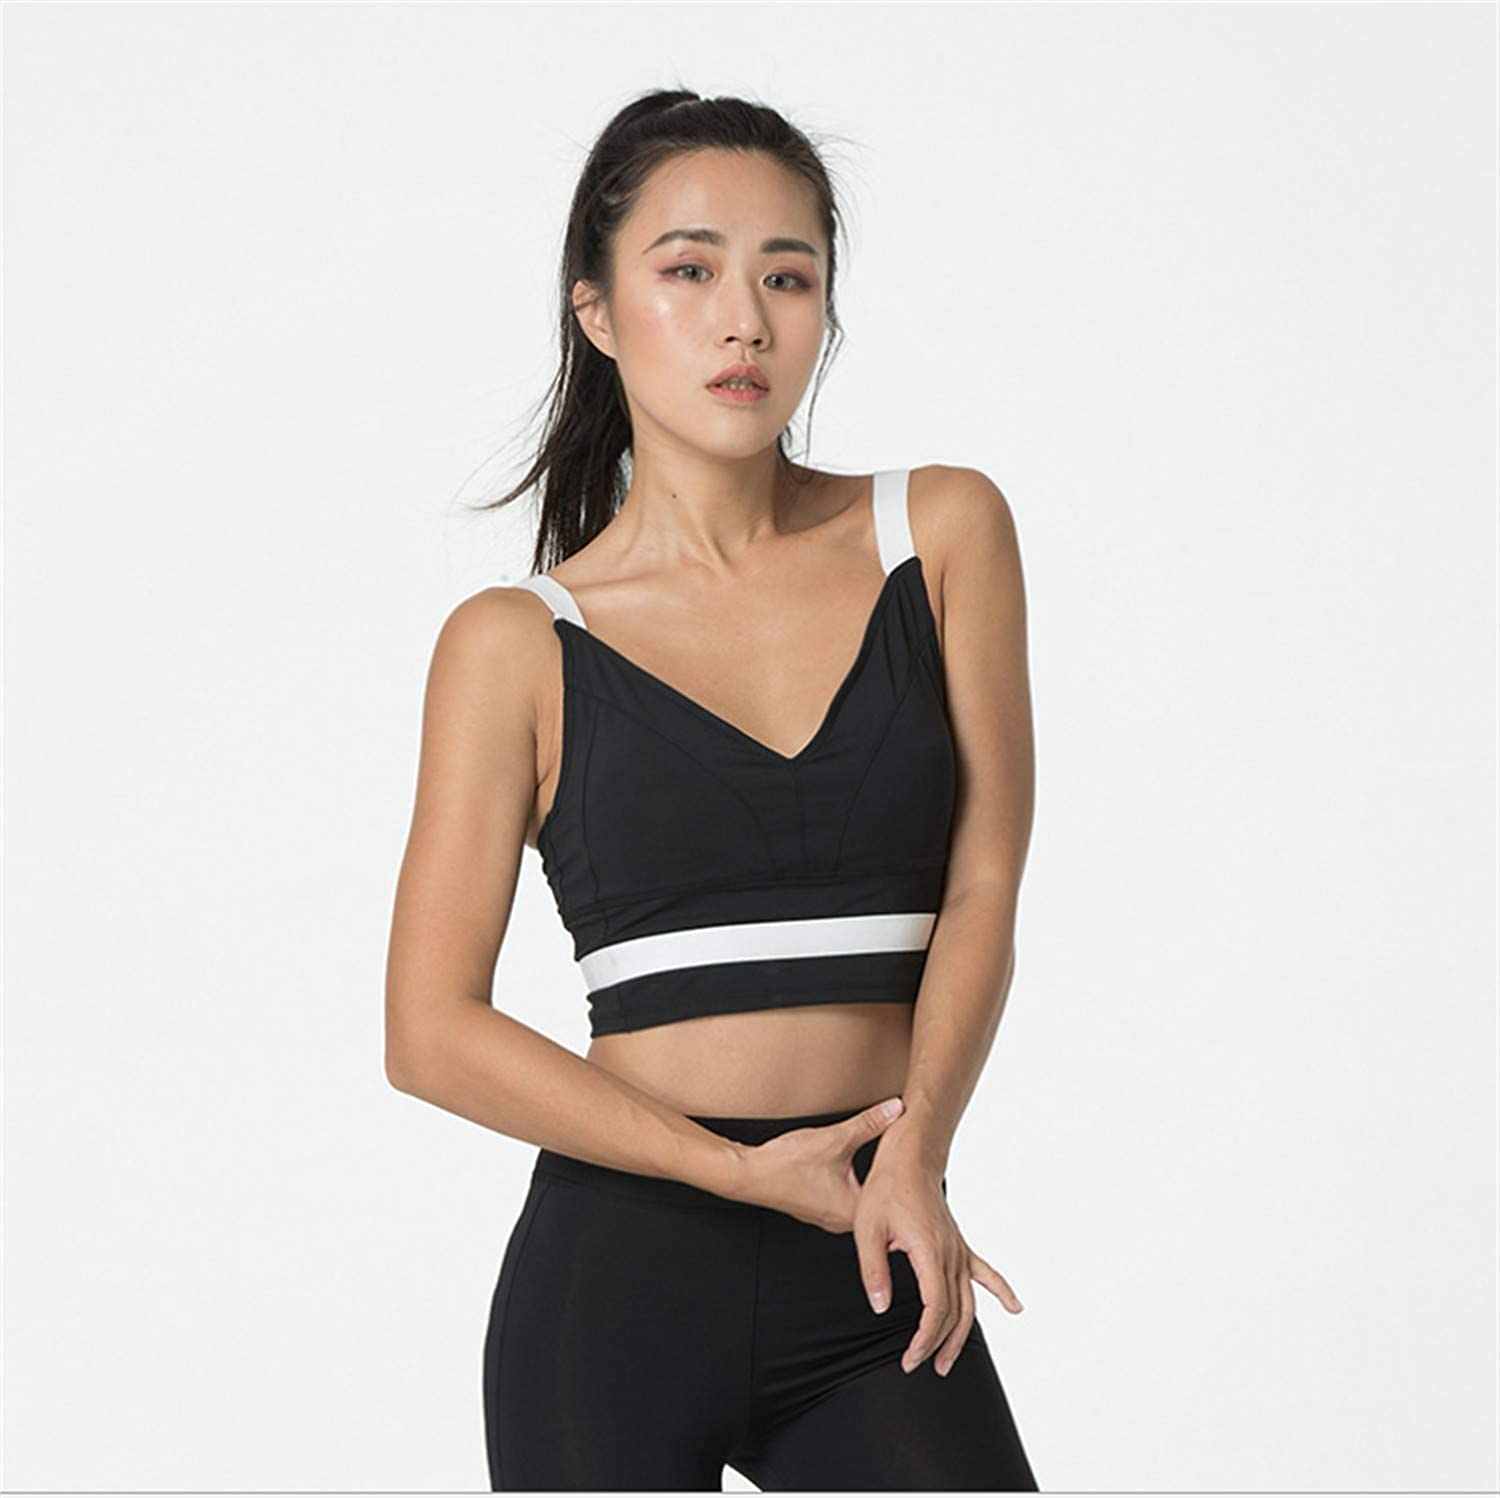 Yoga Bra Womens Sports Cross Straps Back Women Girl High Impact Gym Workout Padded Breathable Running